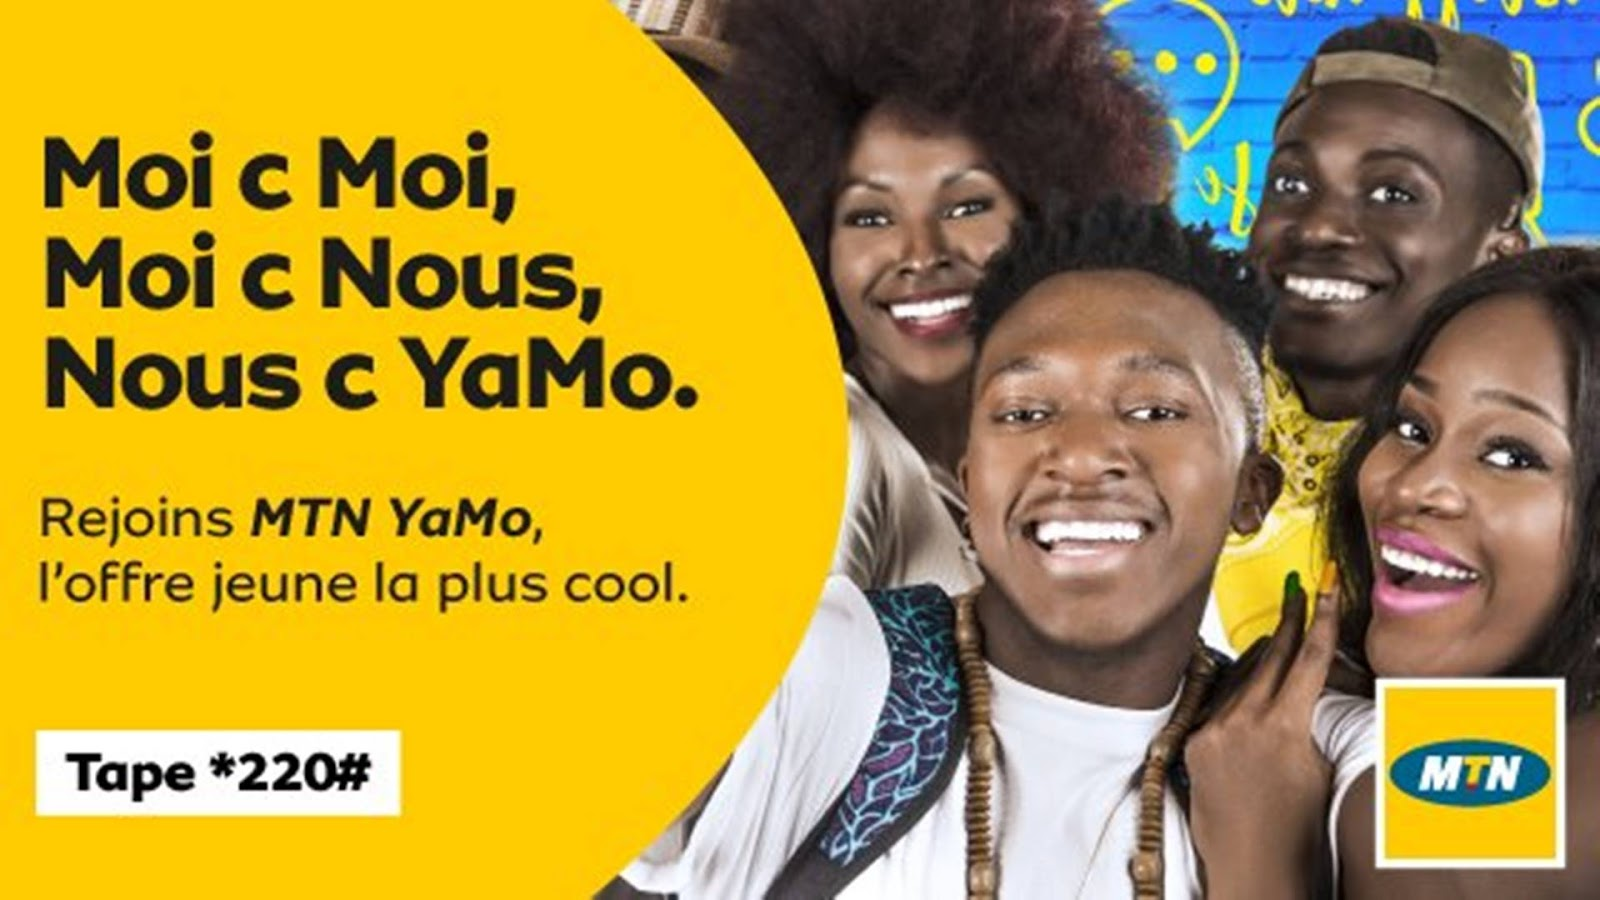 Mtn Yamo Mix Offers 6GB Data, 25000Frs Call Credit and SMS